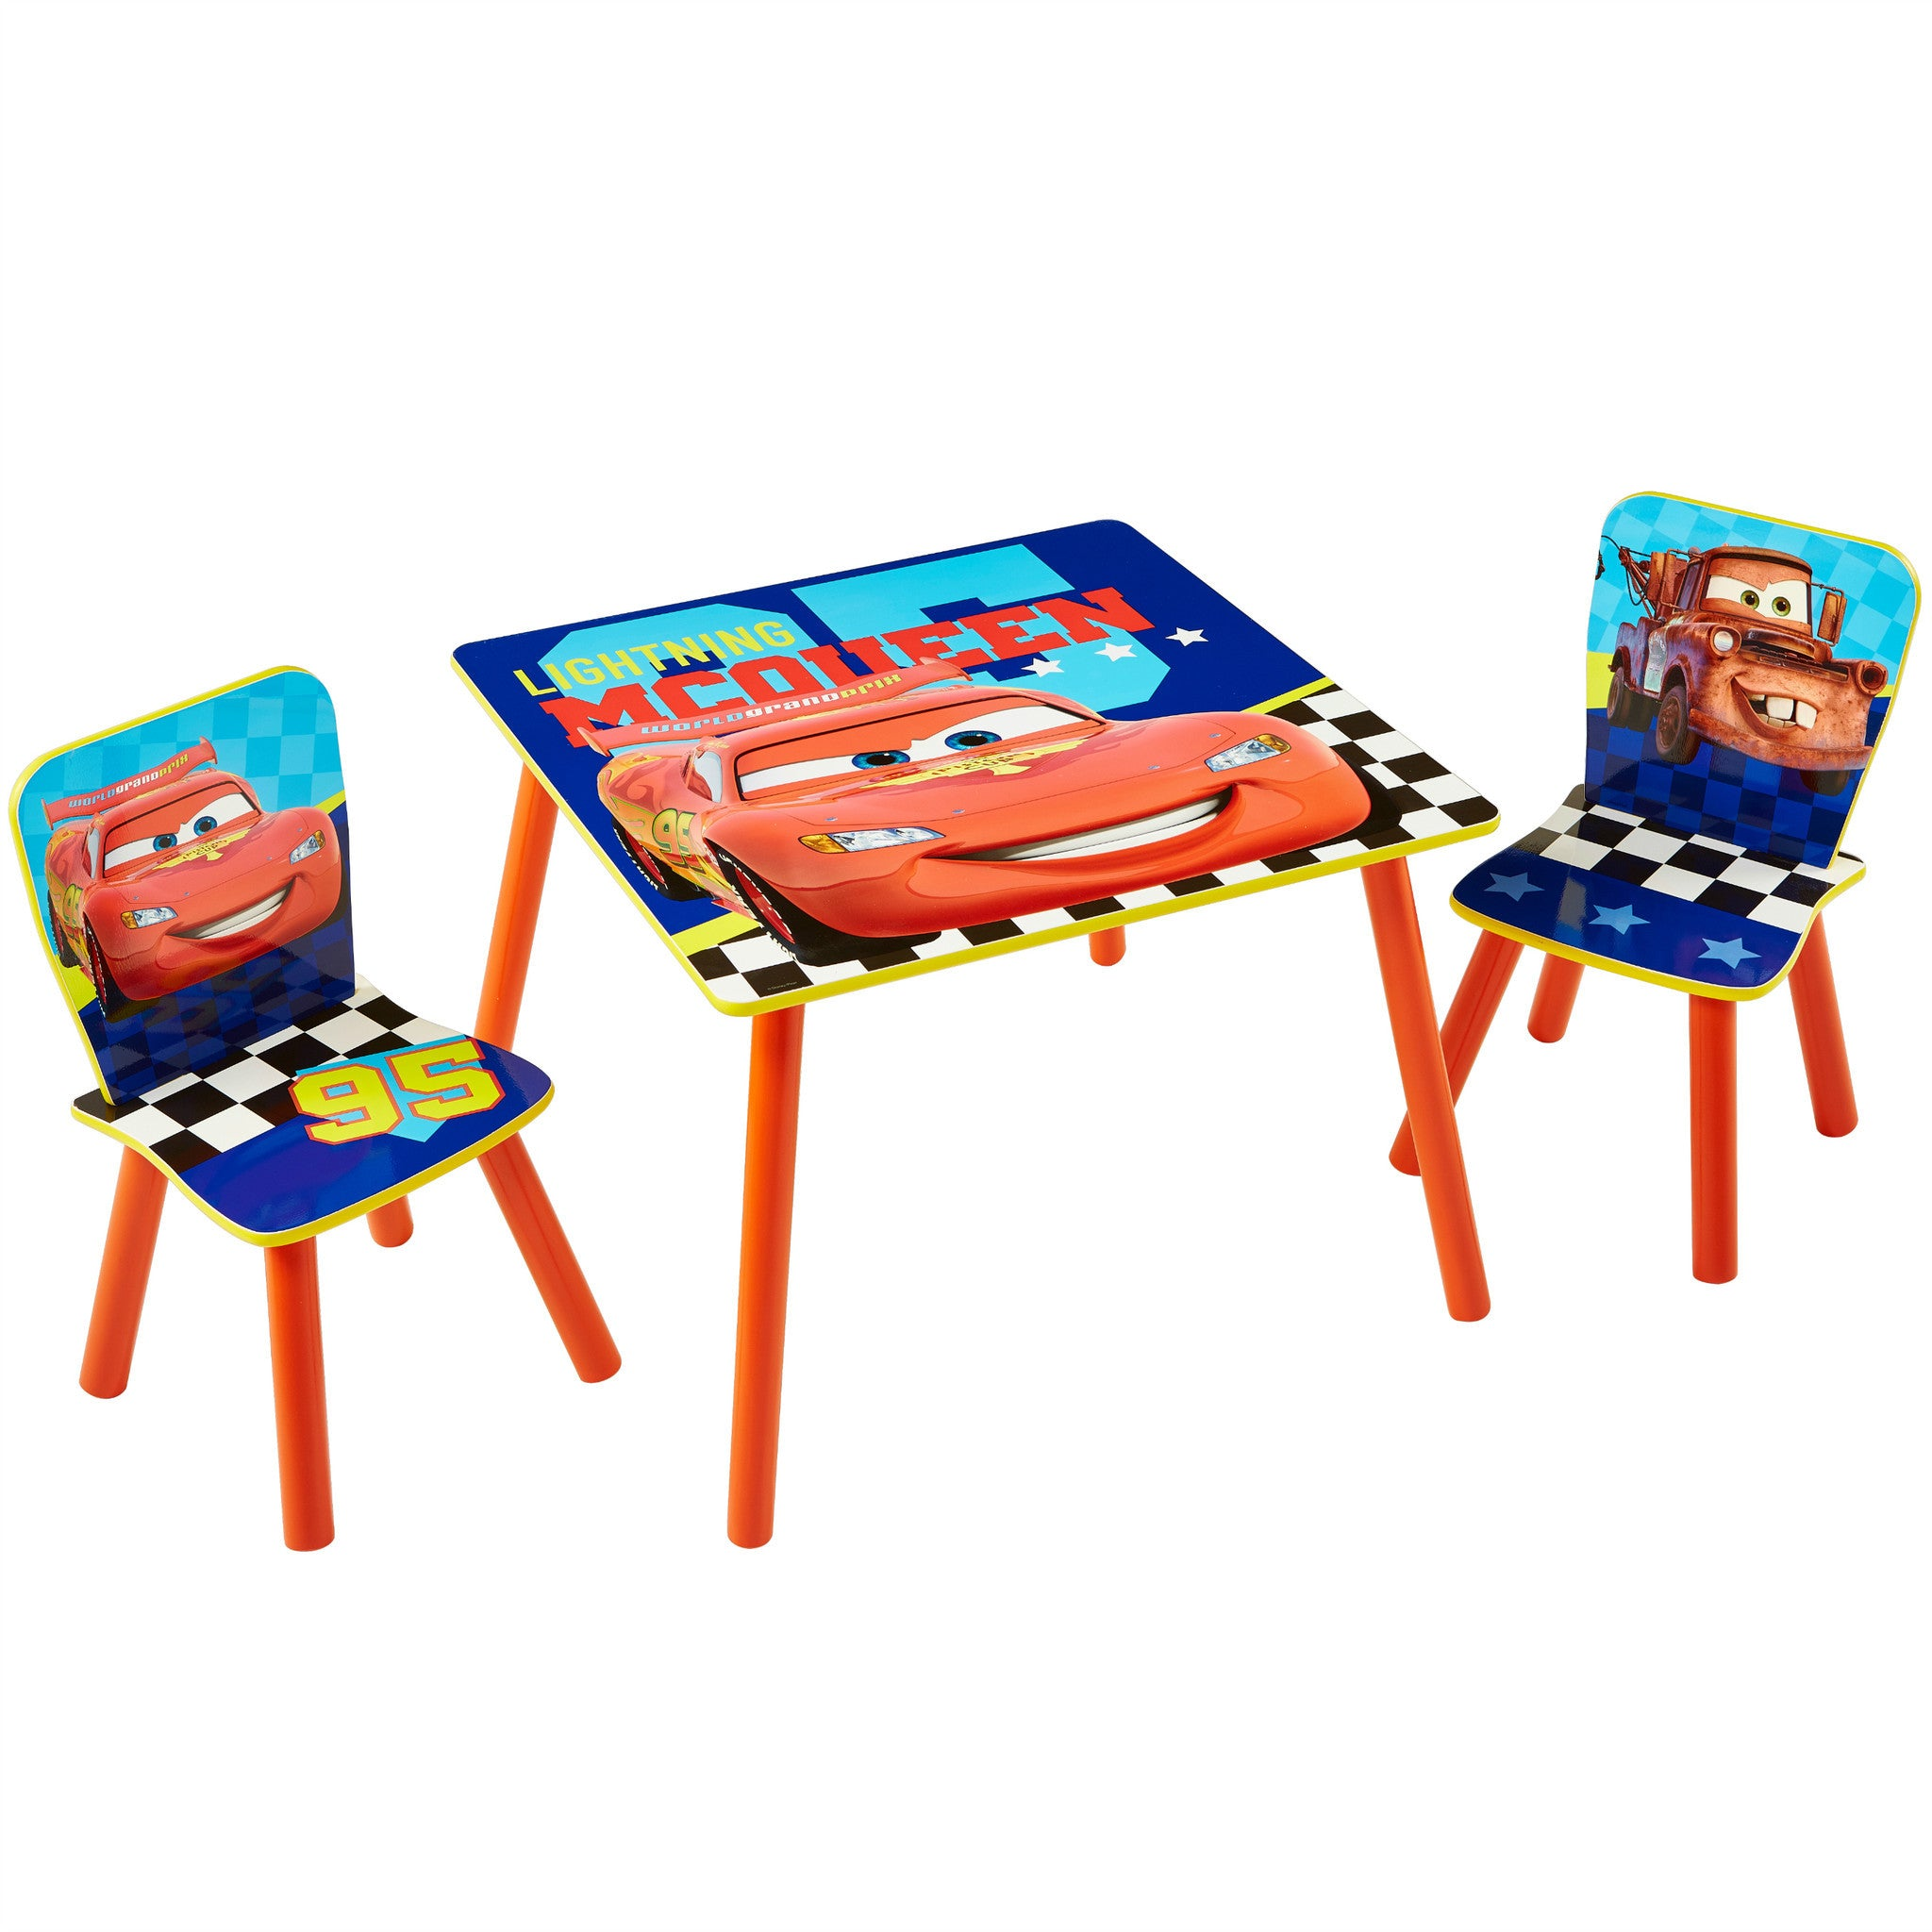 Disney Pixar Cars 2 Lightning McQueen Desk and Stool Set Worlds